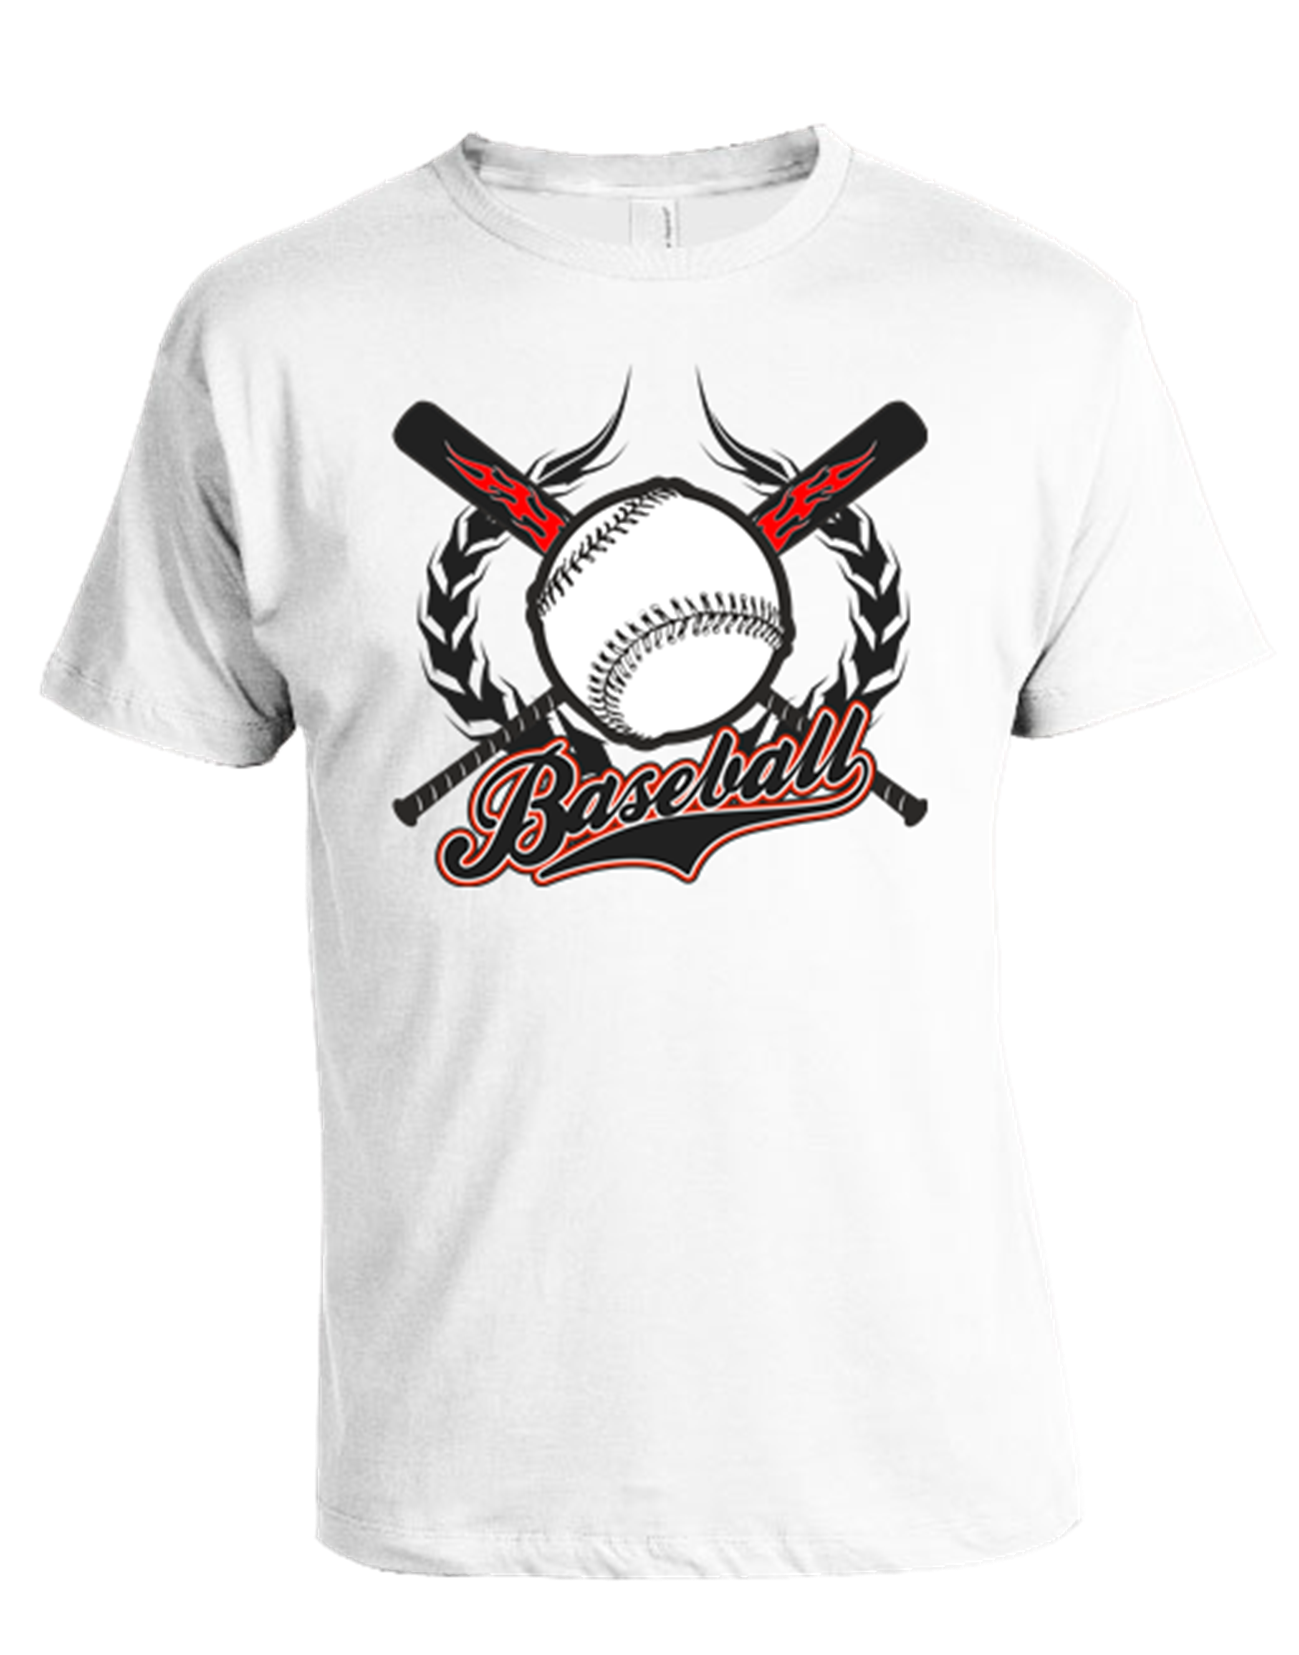 Baseball T Shirt Designs Ideas 24 shirt miniumum Baseball Design T Shirt